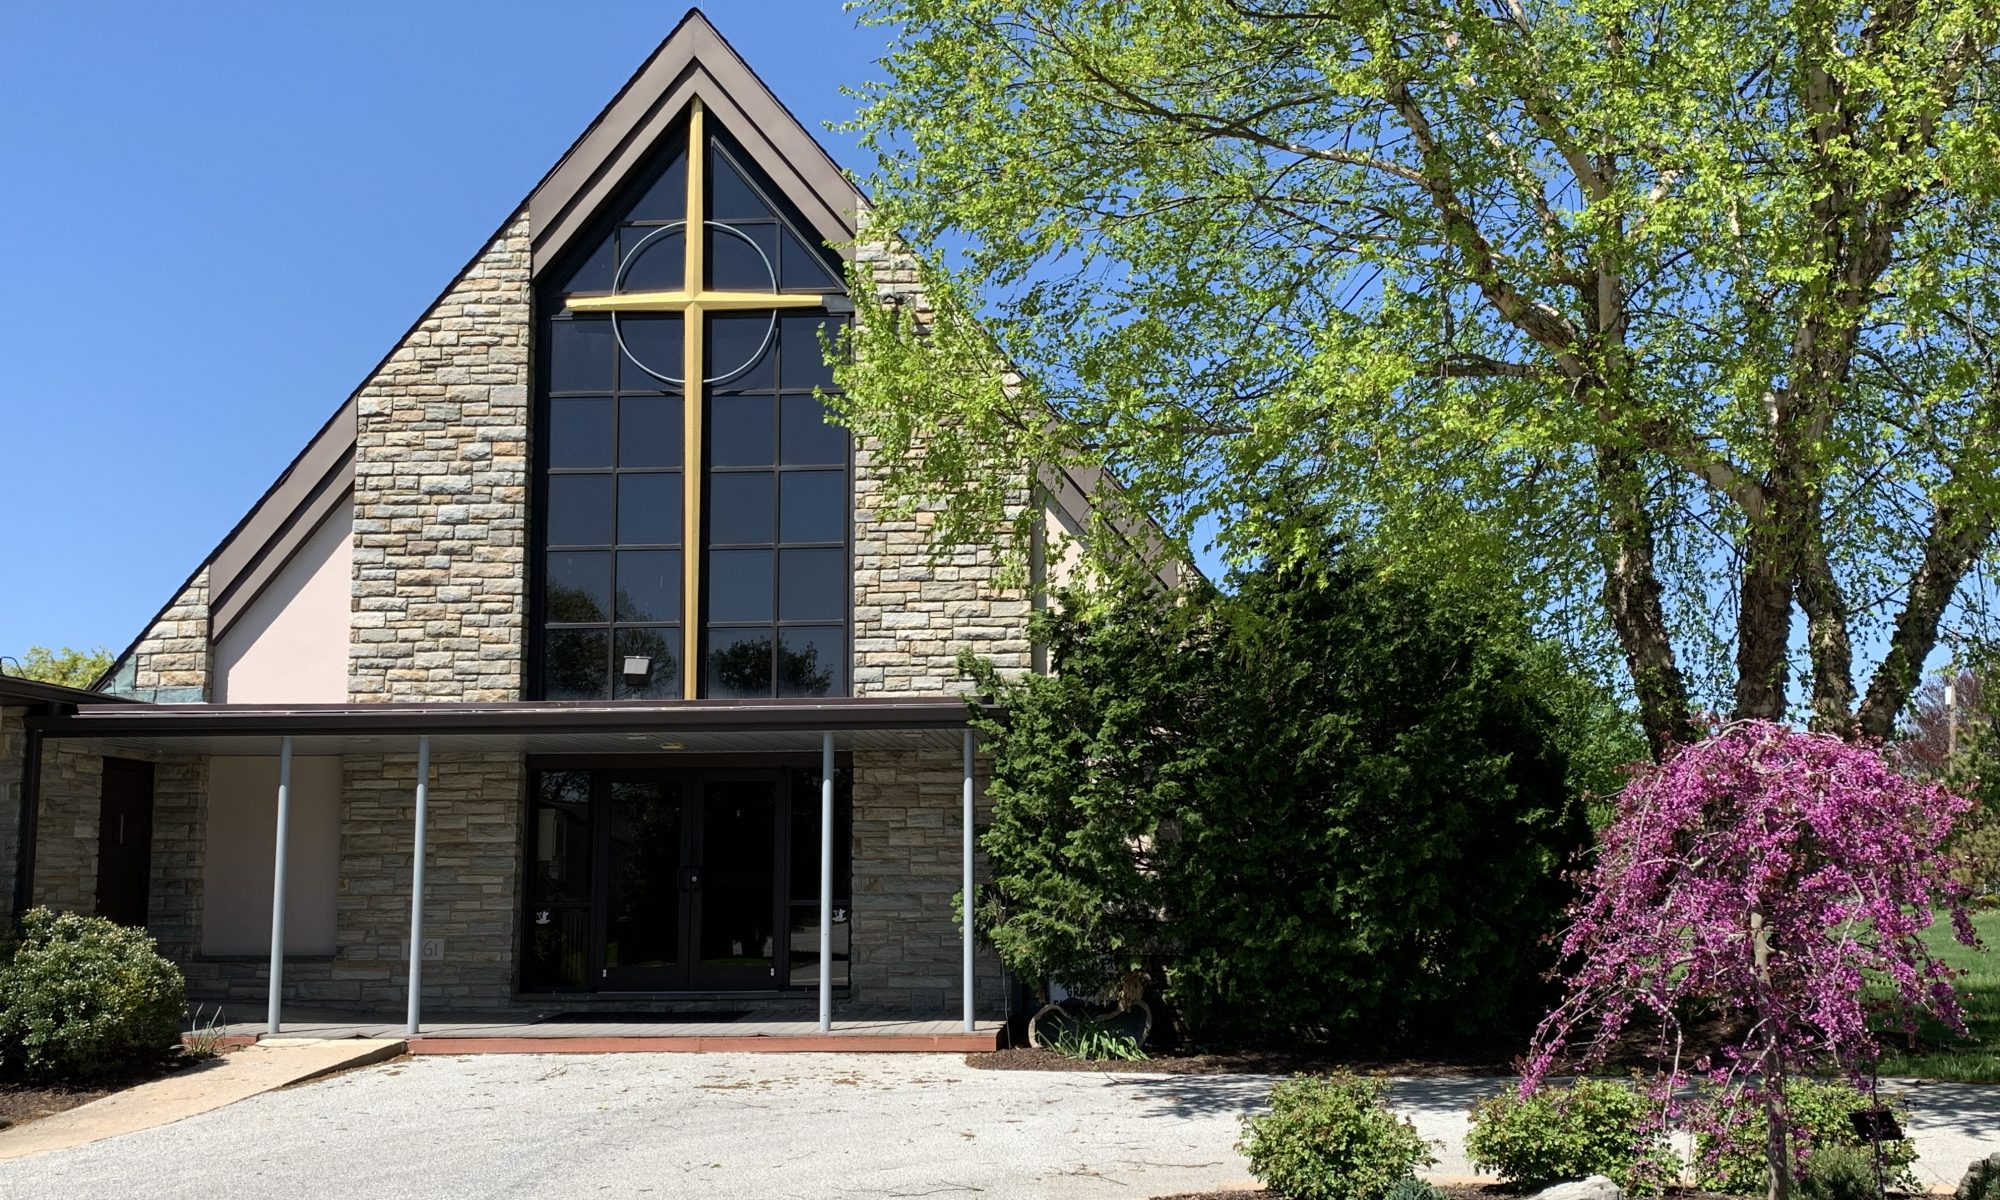 St. Christopher's Episcopal Church Sunday Worship suspended through May 4, 2020 - see st. christopher's facebook page for Livestreaming @ 10:30 a.m. each sunday starting 3/29